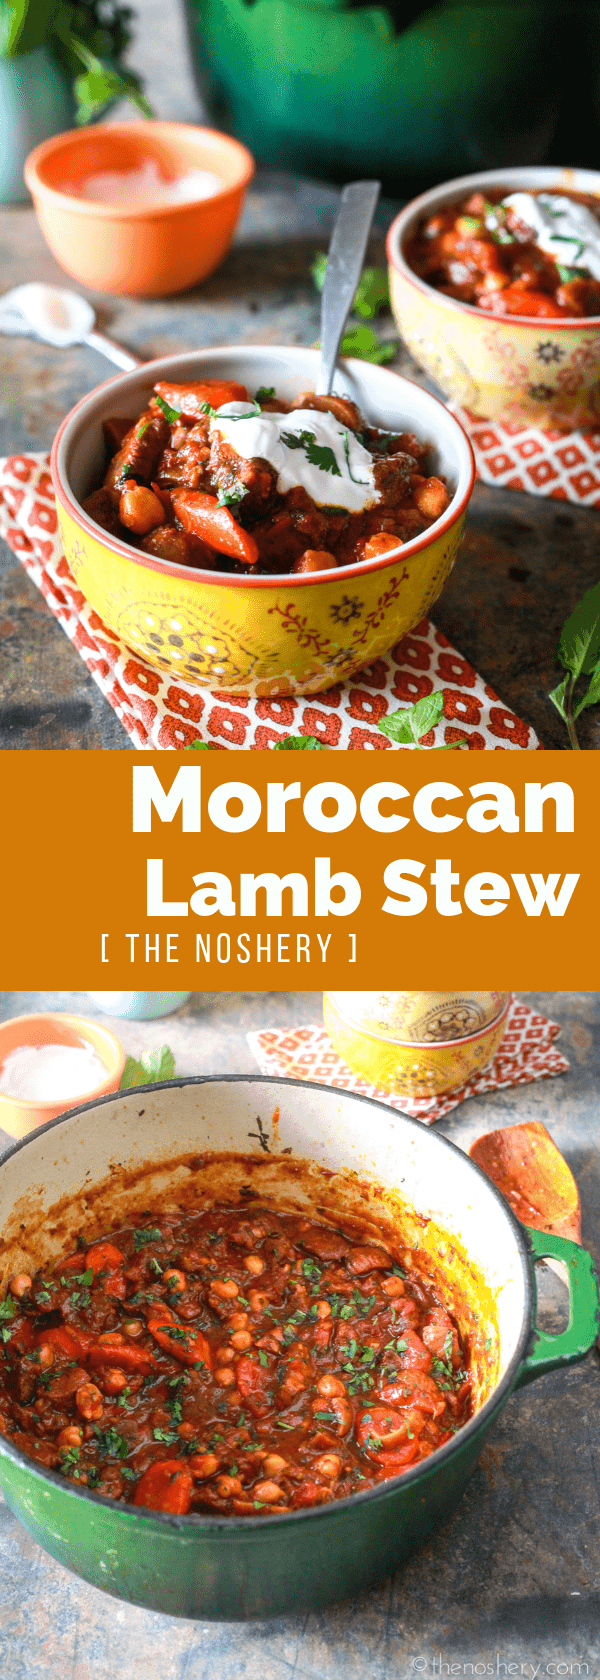 Moroccan Lamb Stew | Sweet, spicy, and fragrant Moroccan lamb stew. A hearty and filling stew fit for fall with the bright flavors of summer. | The Noshery